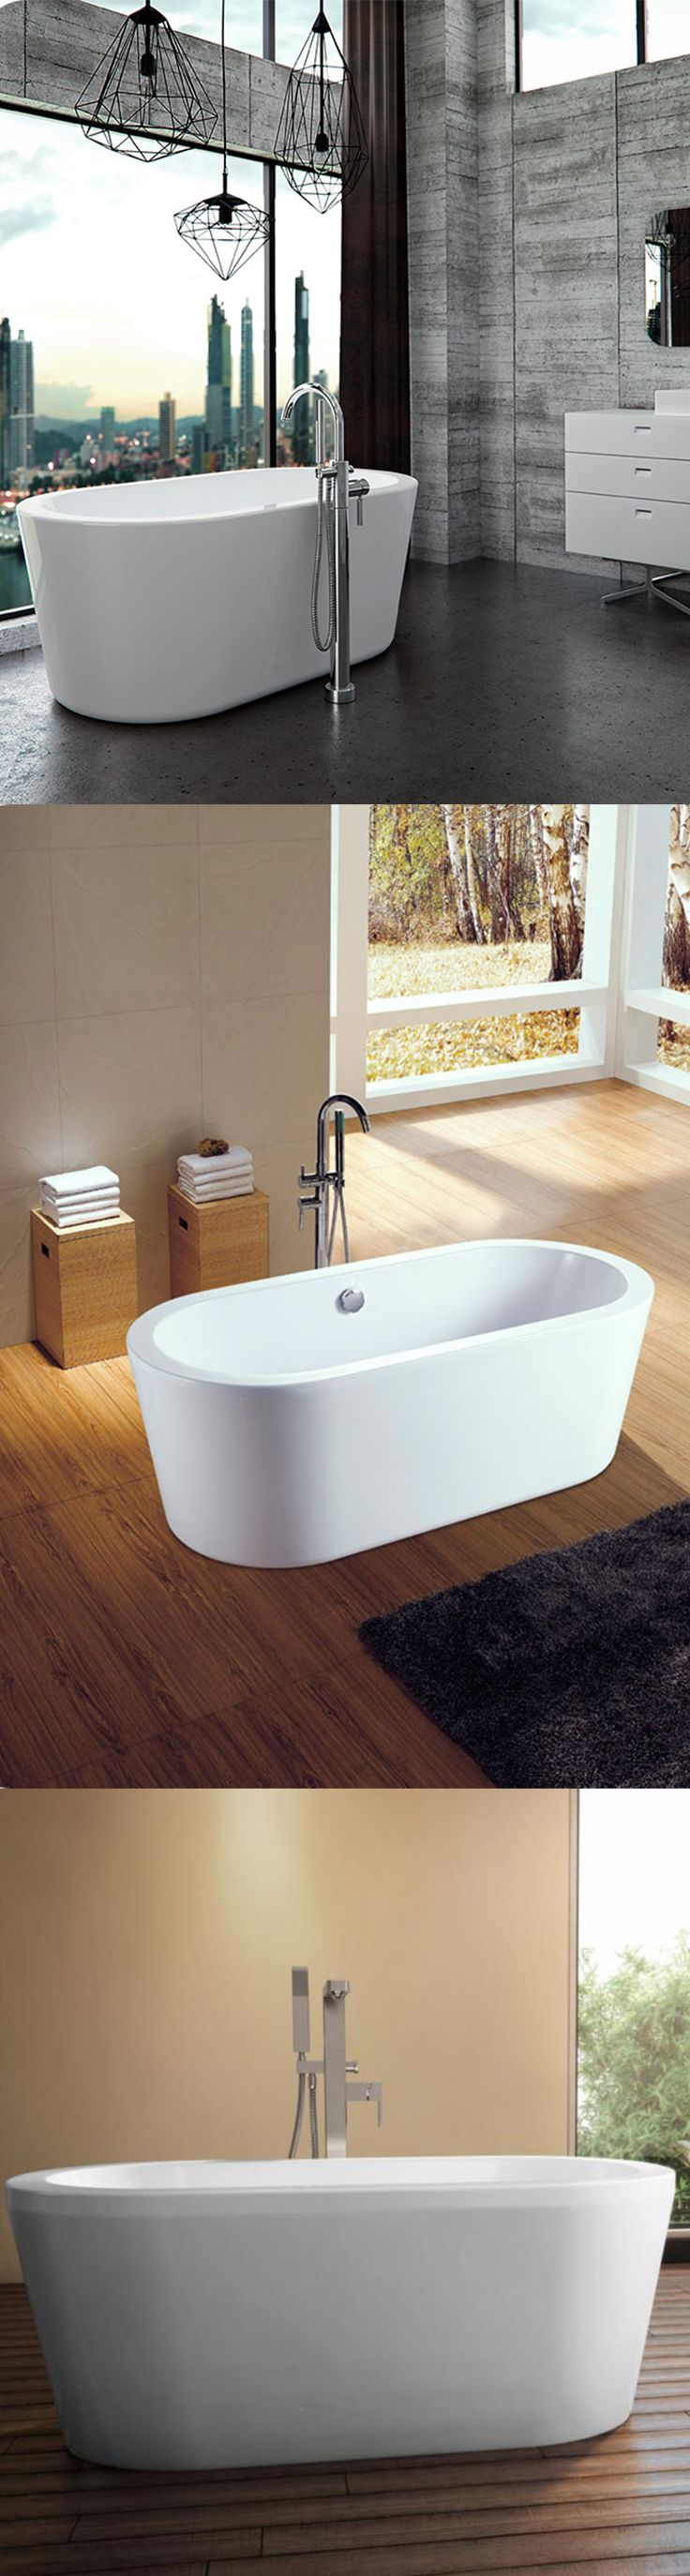 Bathtubs Bath Ideas House Remodeling Master Bath